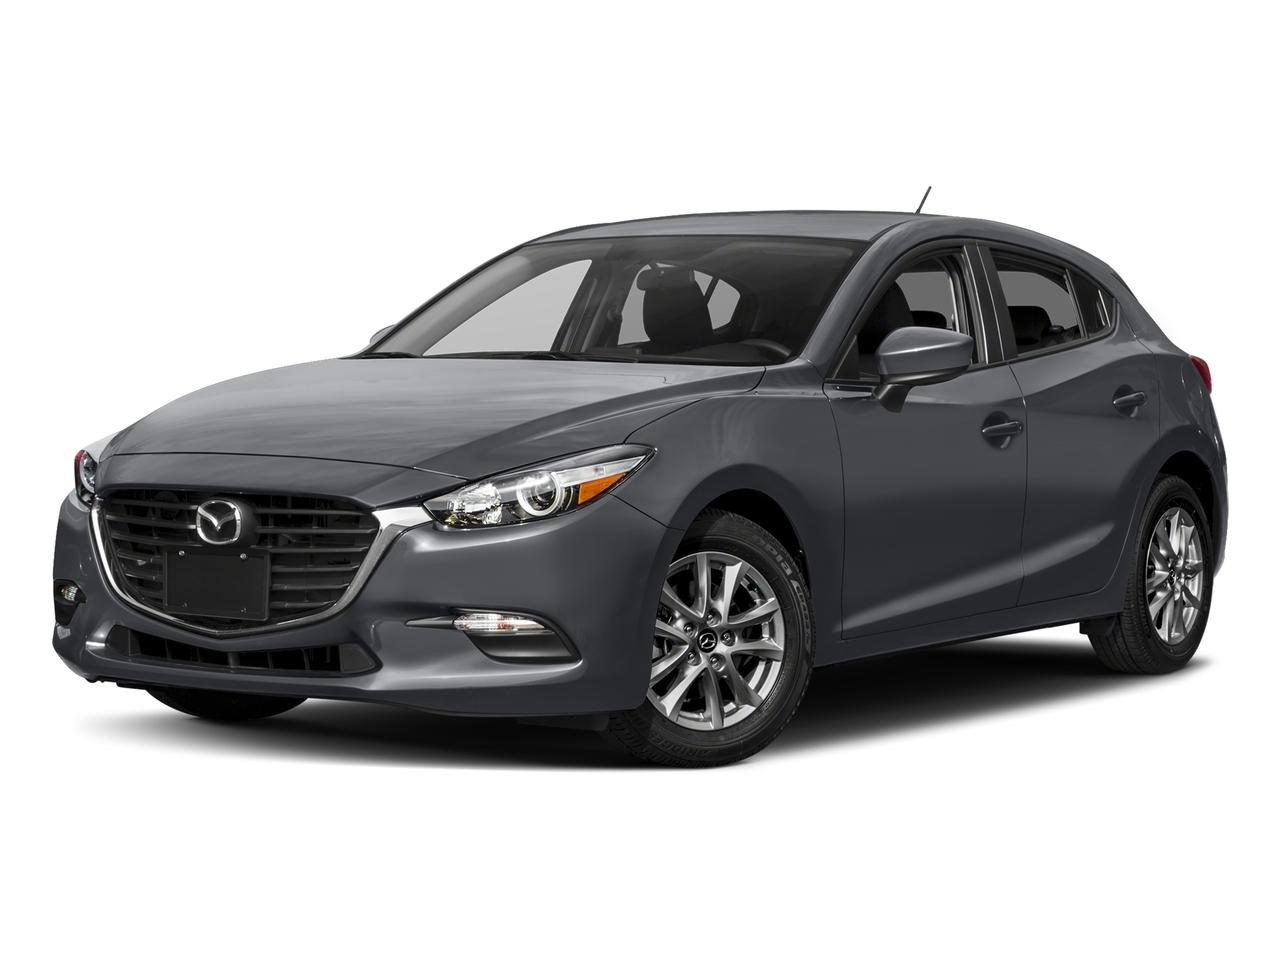 2017 Mazda Mazda3 5-Door Vehicle Photo in Joliet, IL 60435